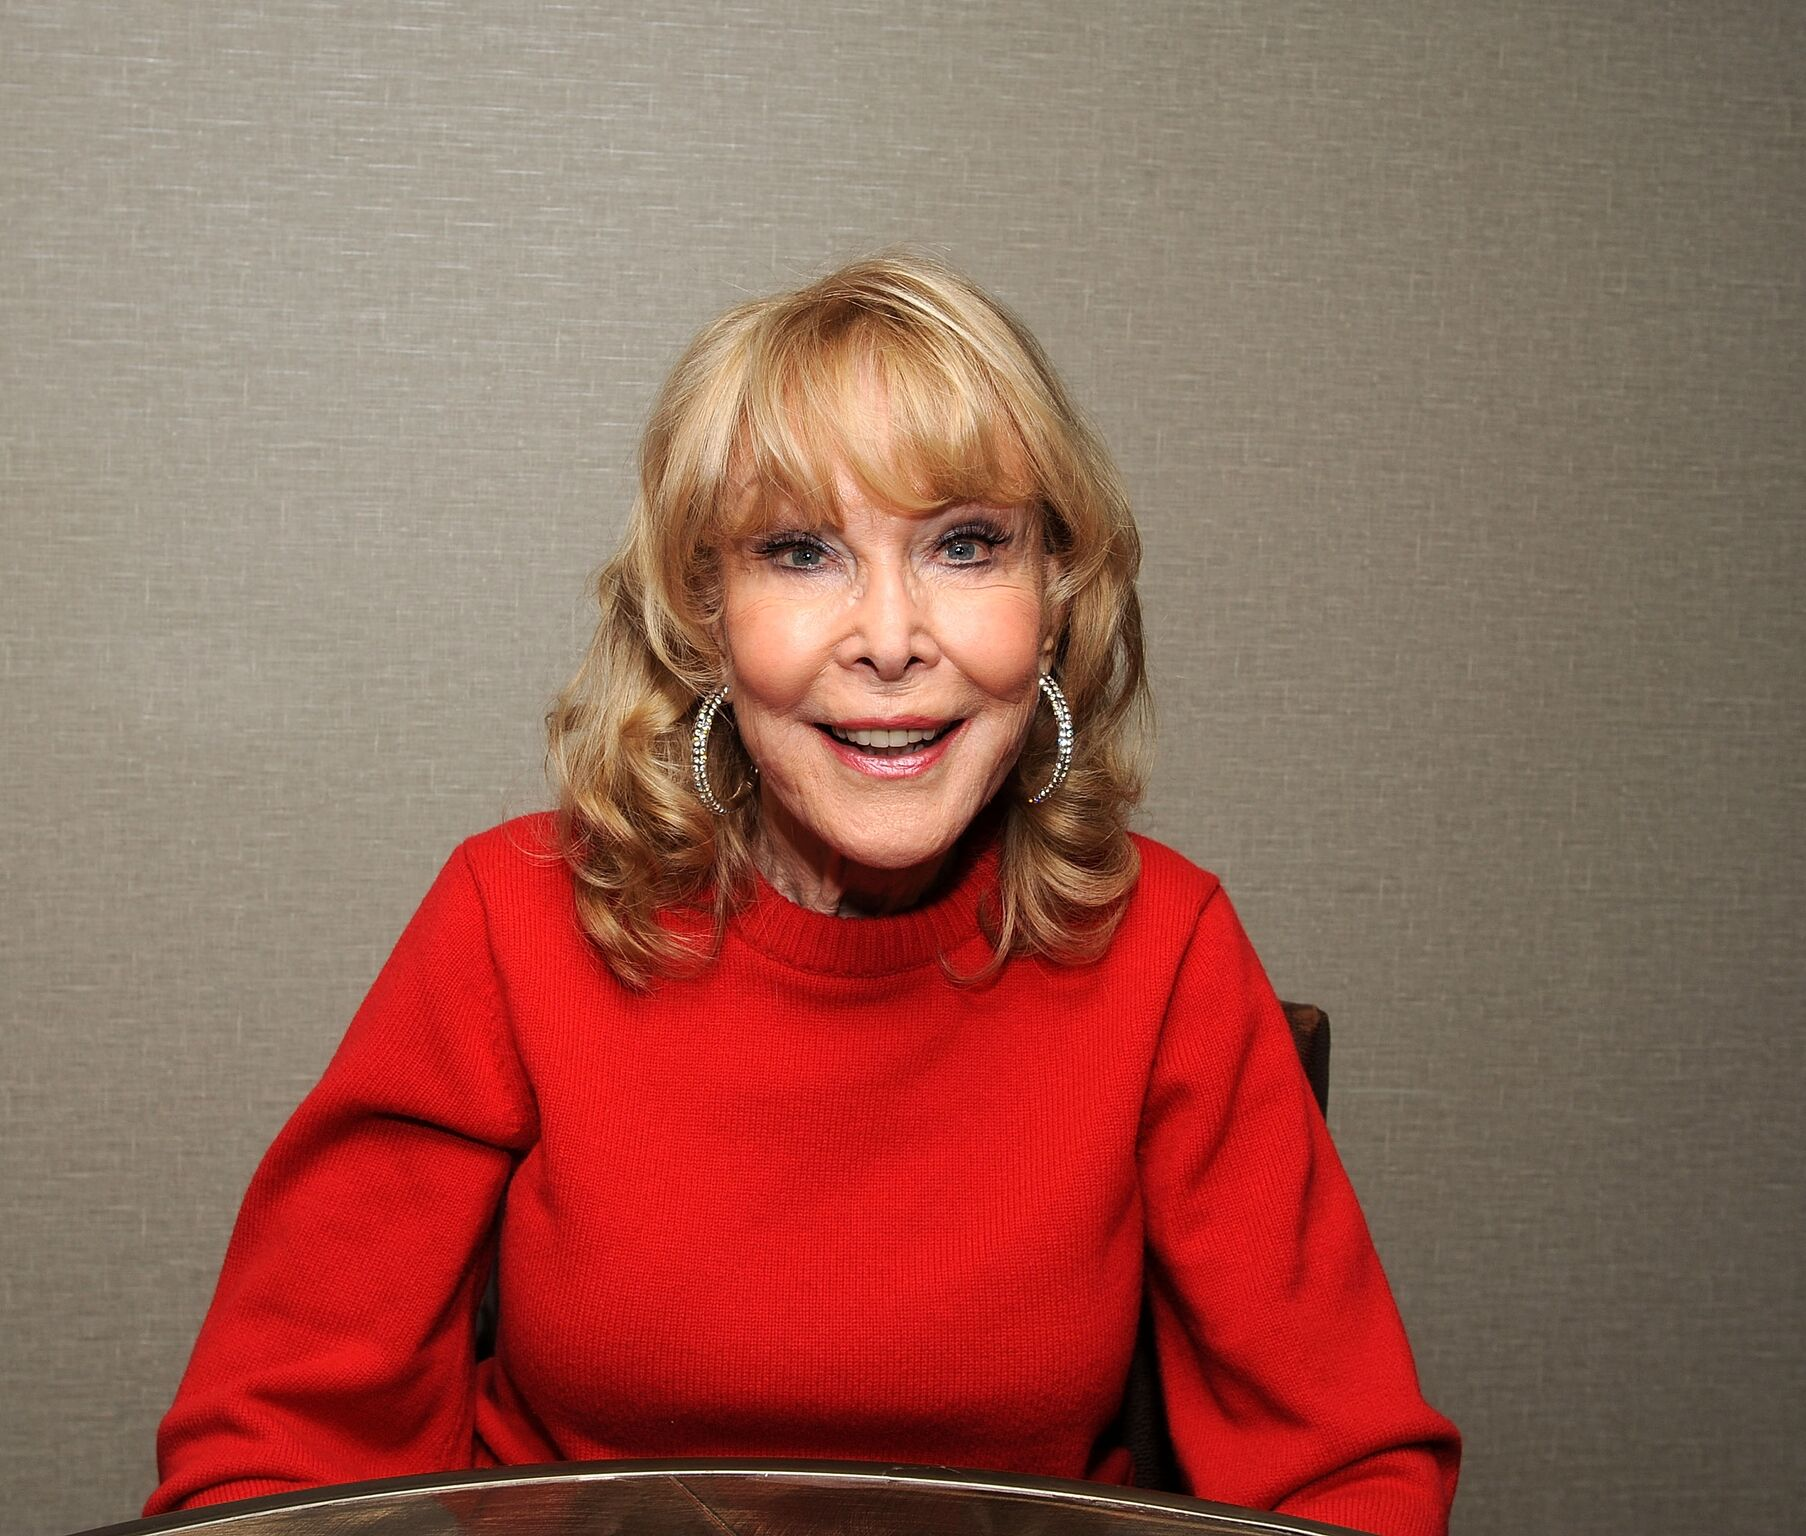 Barbara Eden attends the Chiller Theatre Expo Fall 2018 at Hilton Parsippany | Getty Images